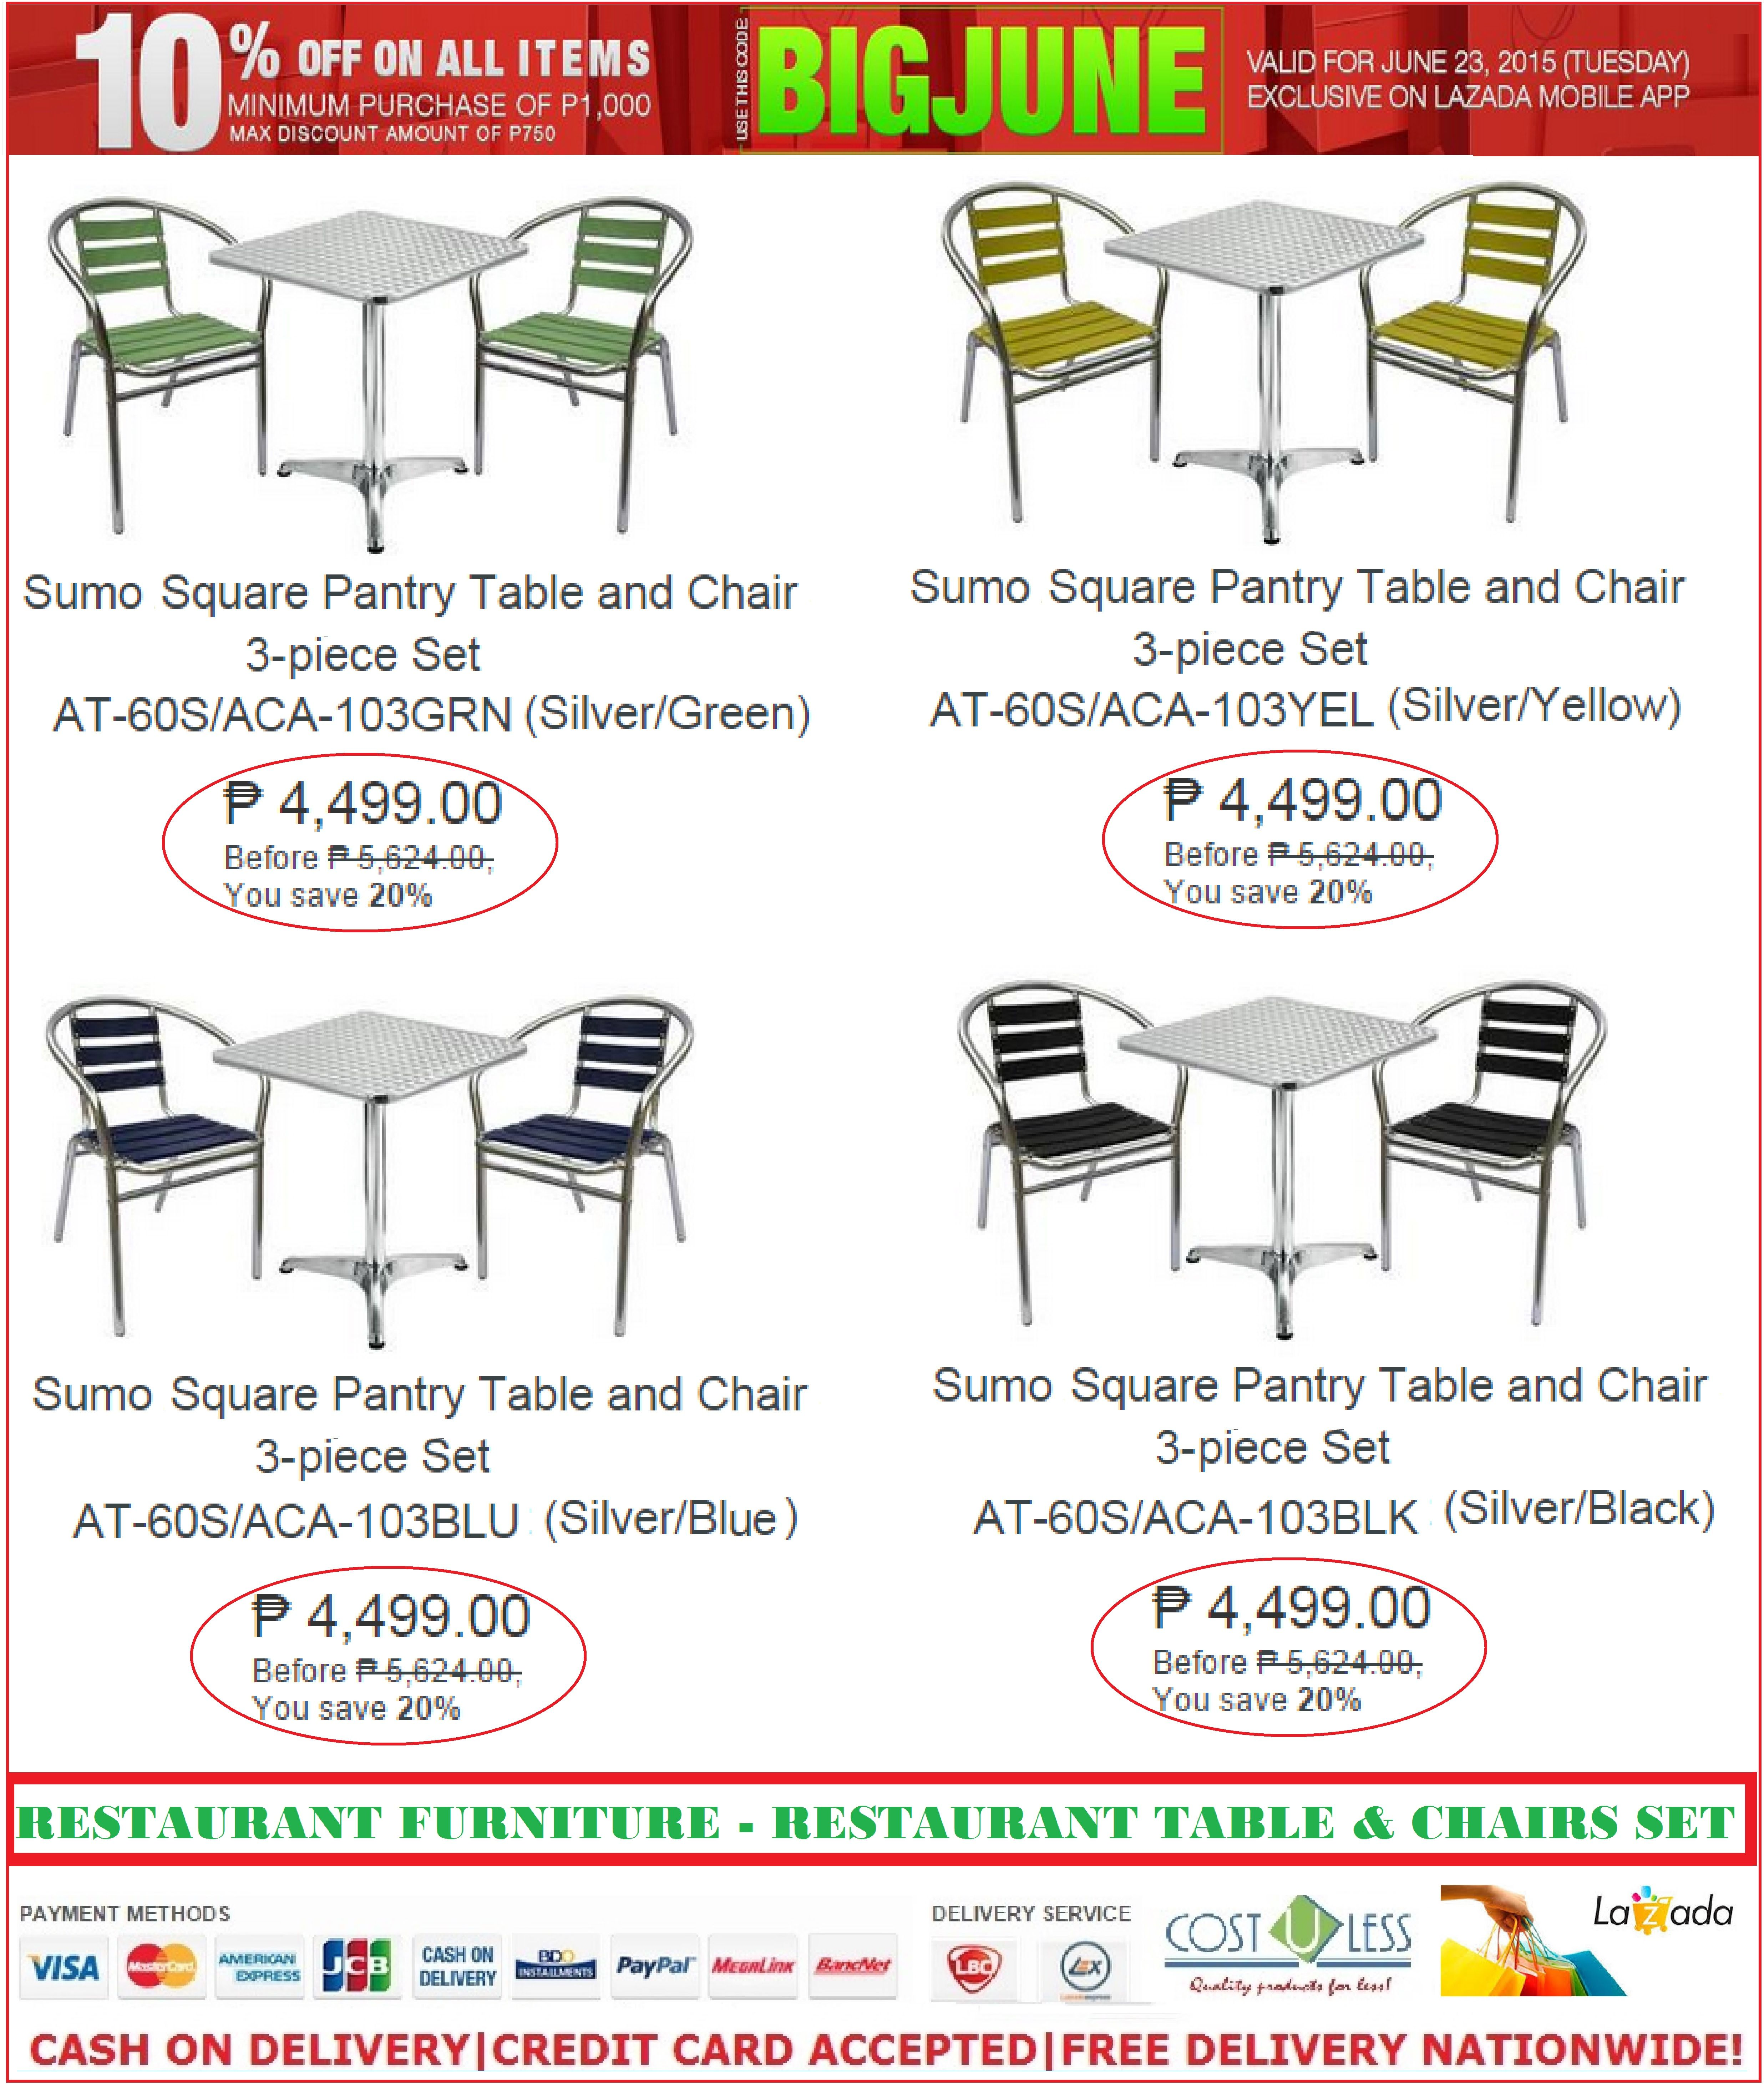 RESTAURANT FURNITURE SALE @LAZADA JUNE PROMO! TAKE 10% OFF DISCOUNT ON  RESTAURANT